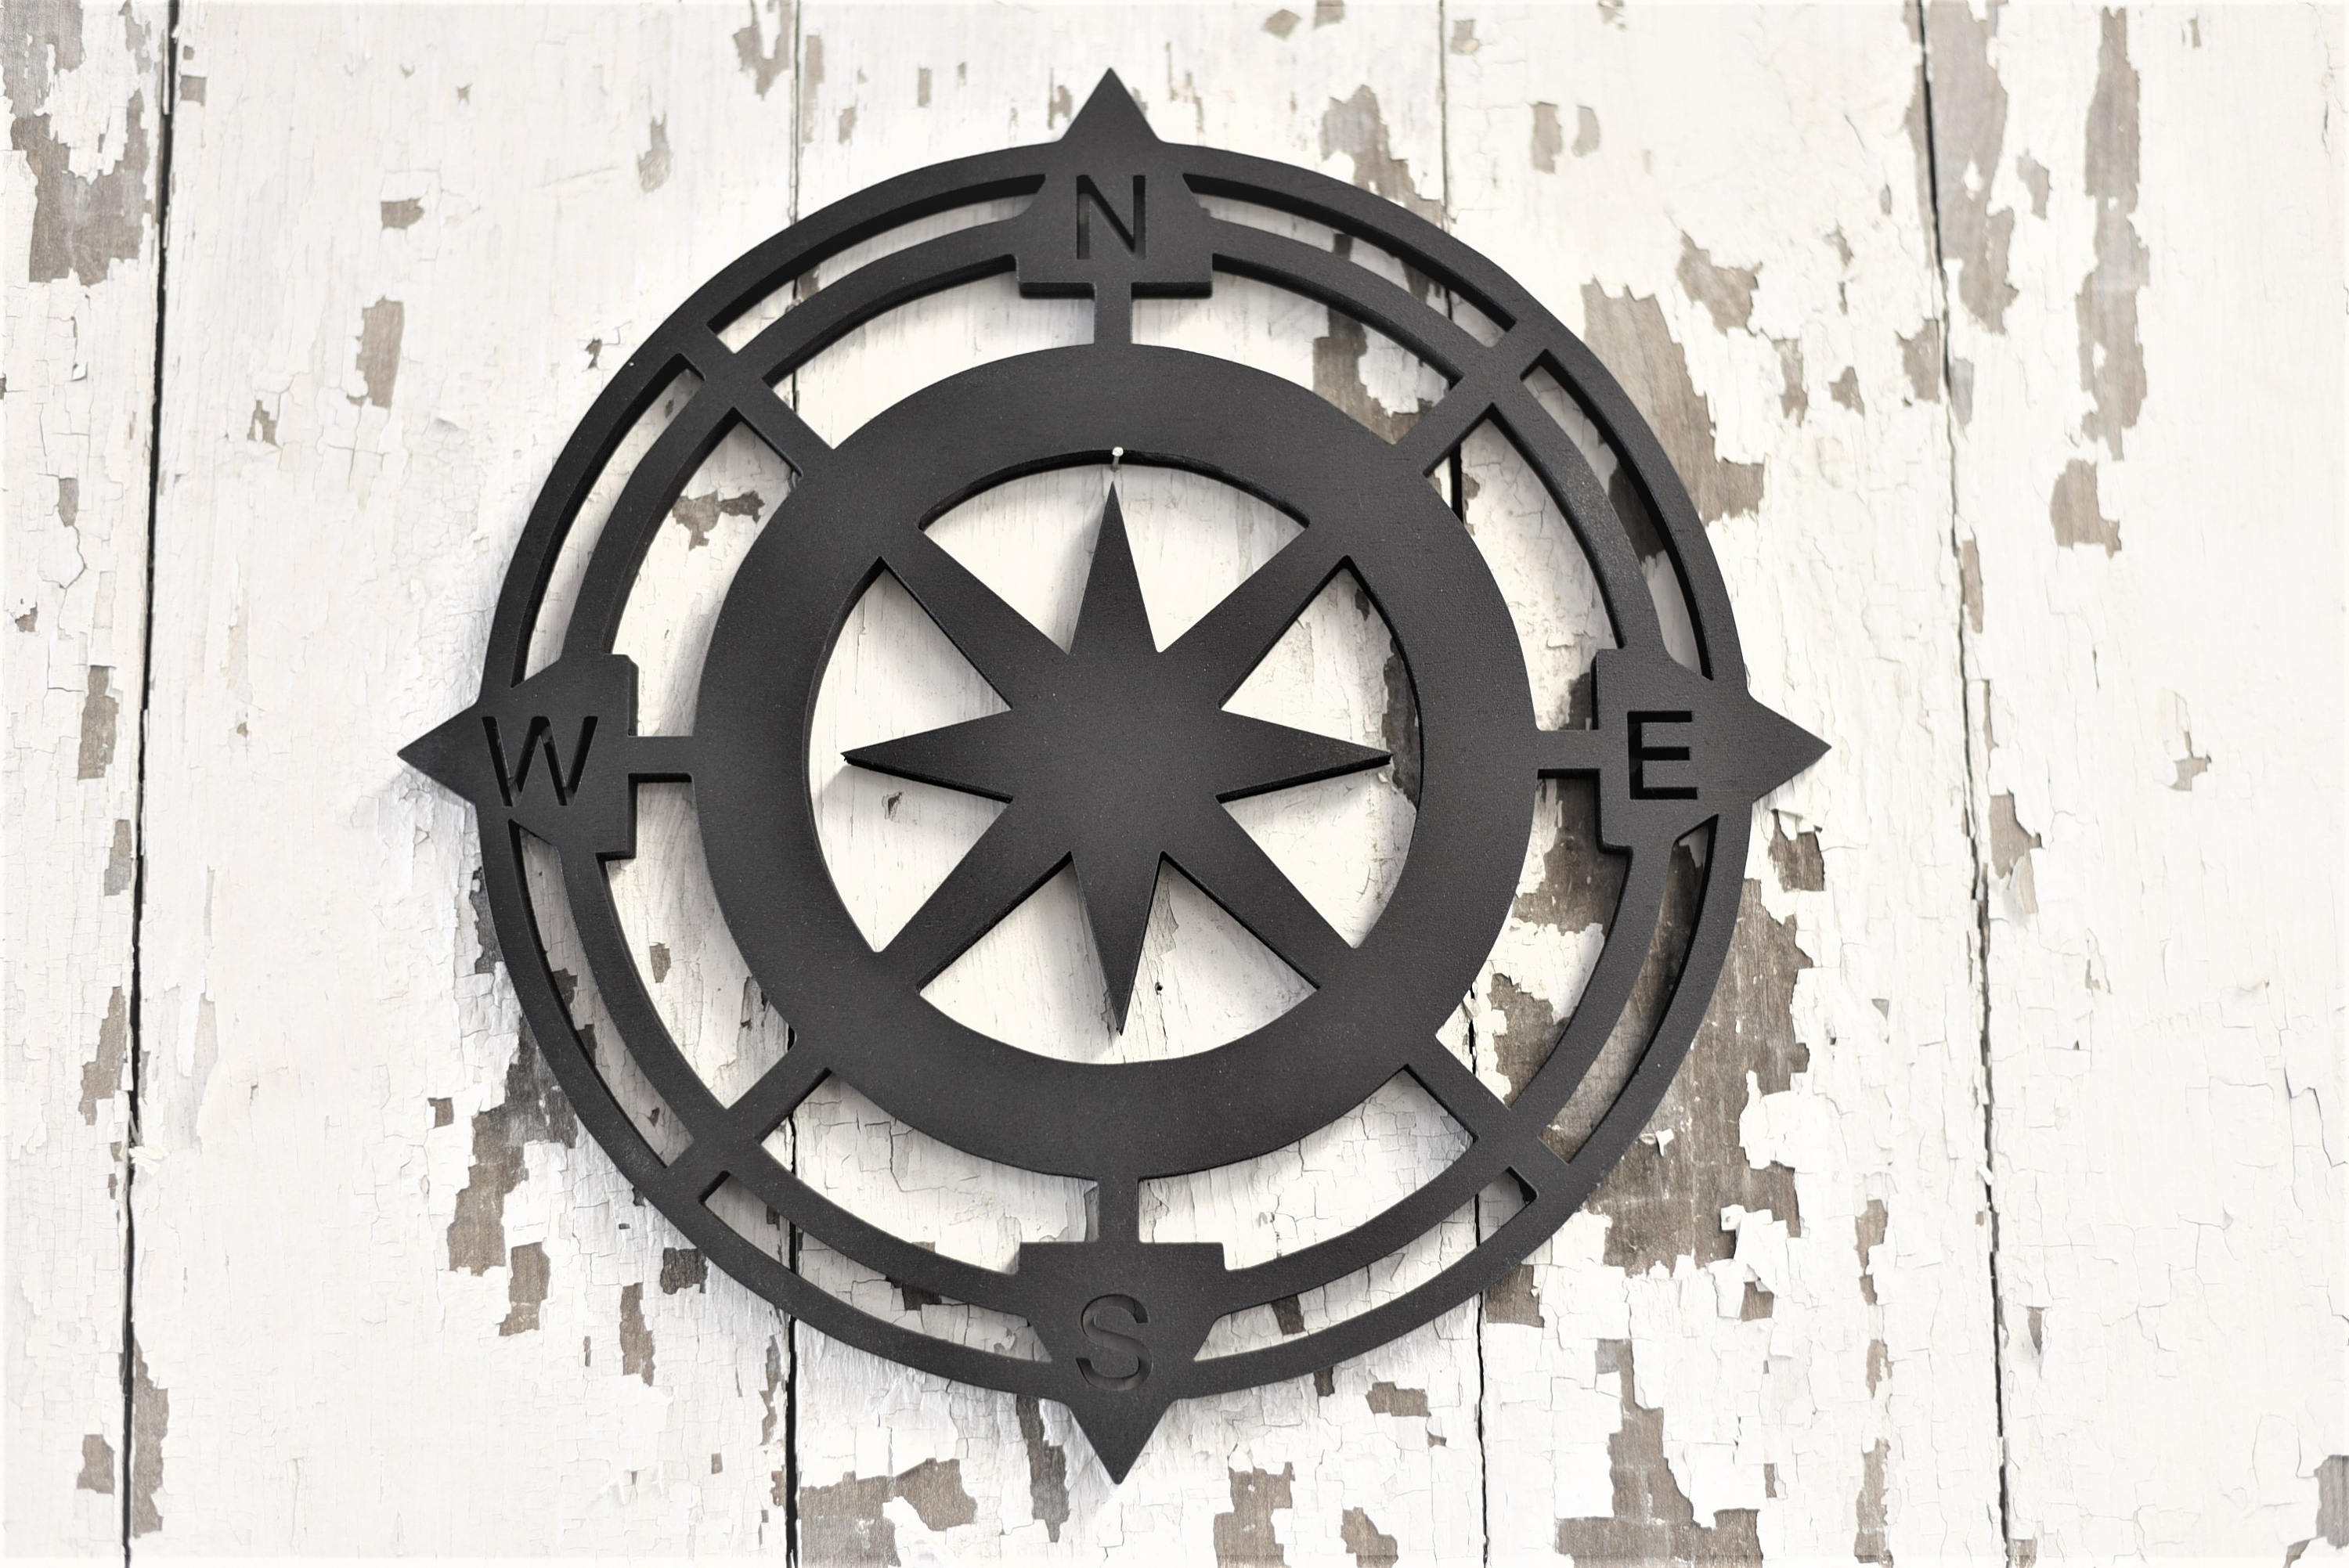 Etsy Pertaining To Round Compass Wall Decor (View 11 of 20)